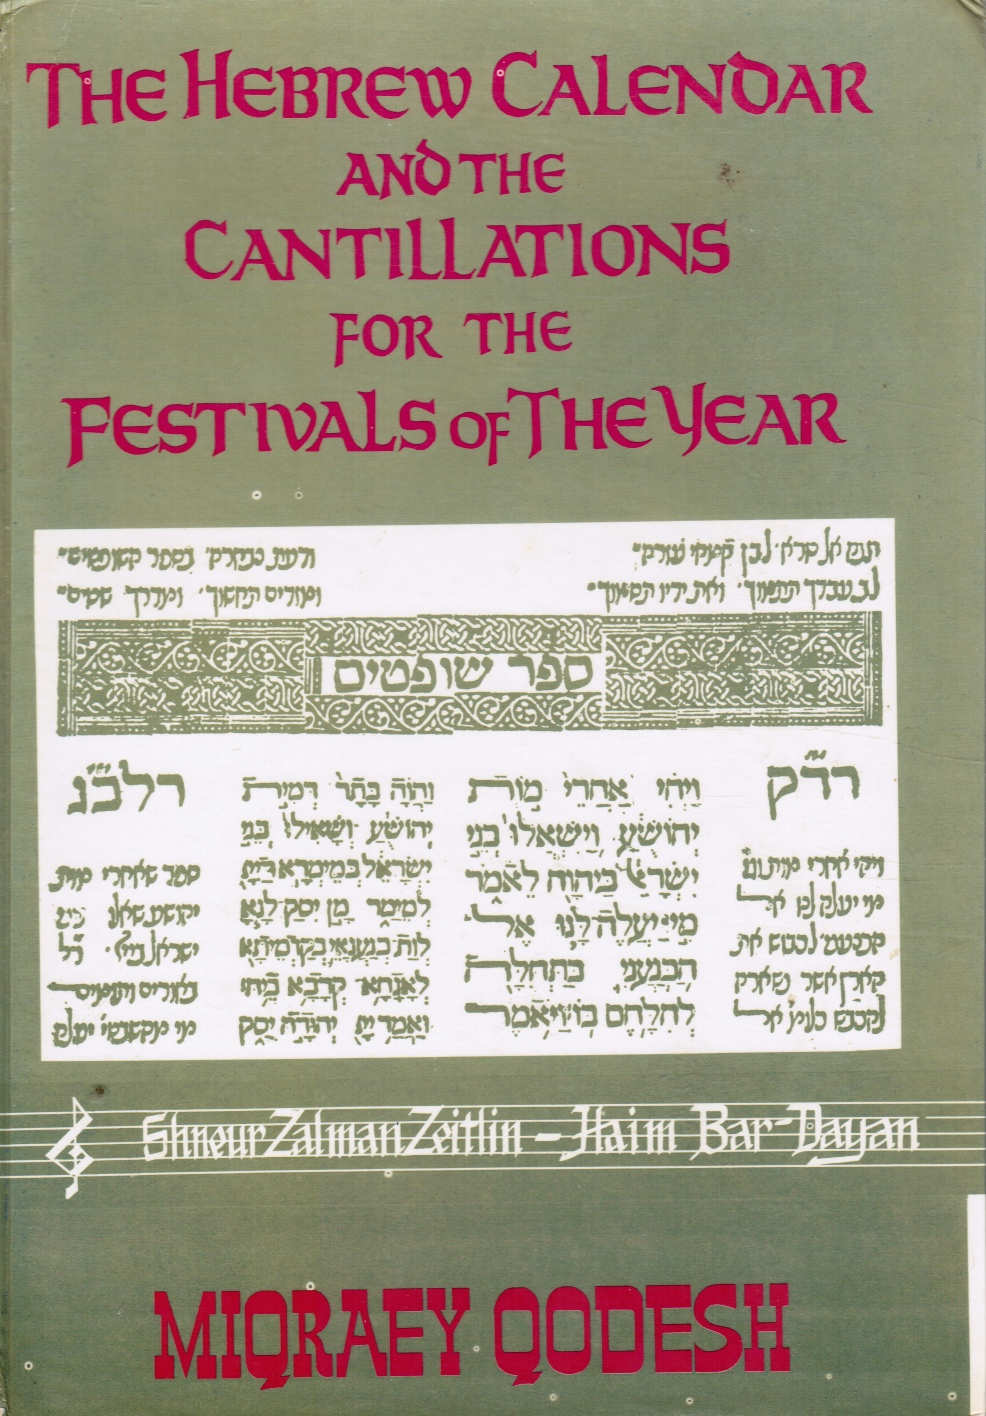 Image for The Hebrew Calendar and the Cantillations for the Festivals of the Year Miqraey Qodesh